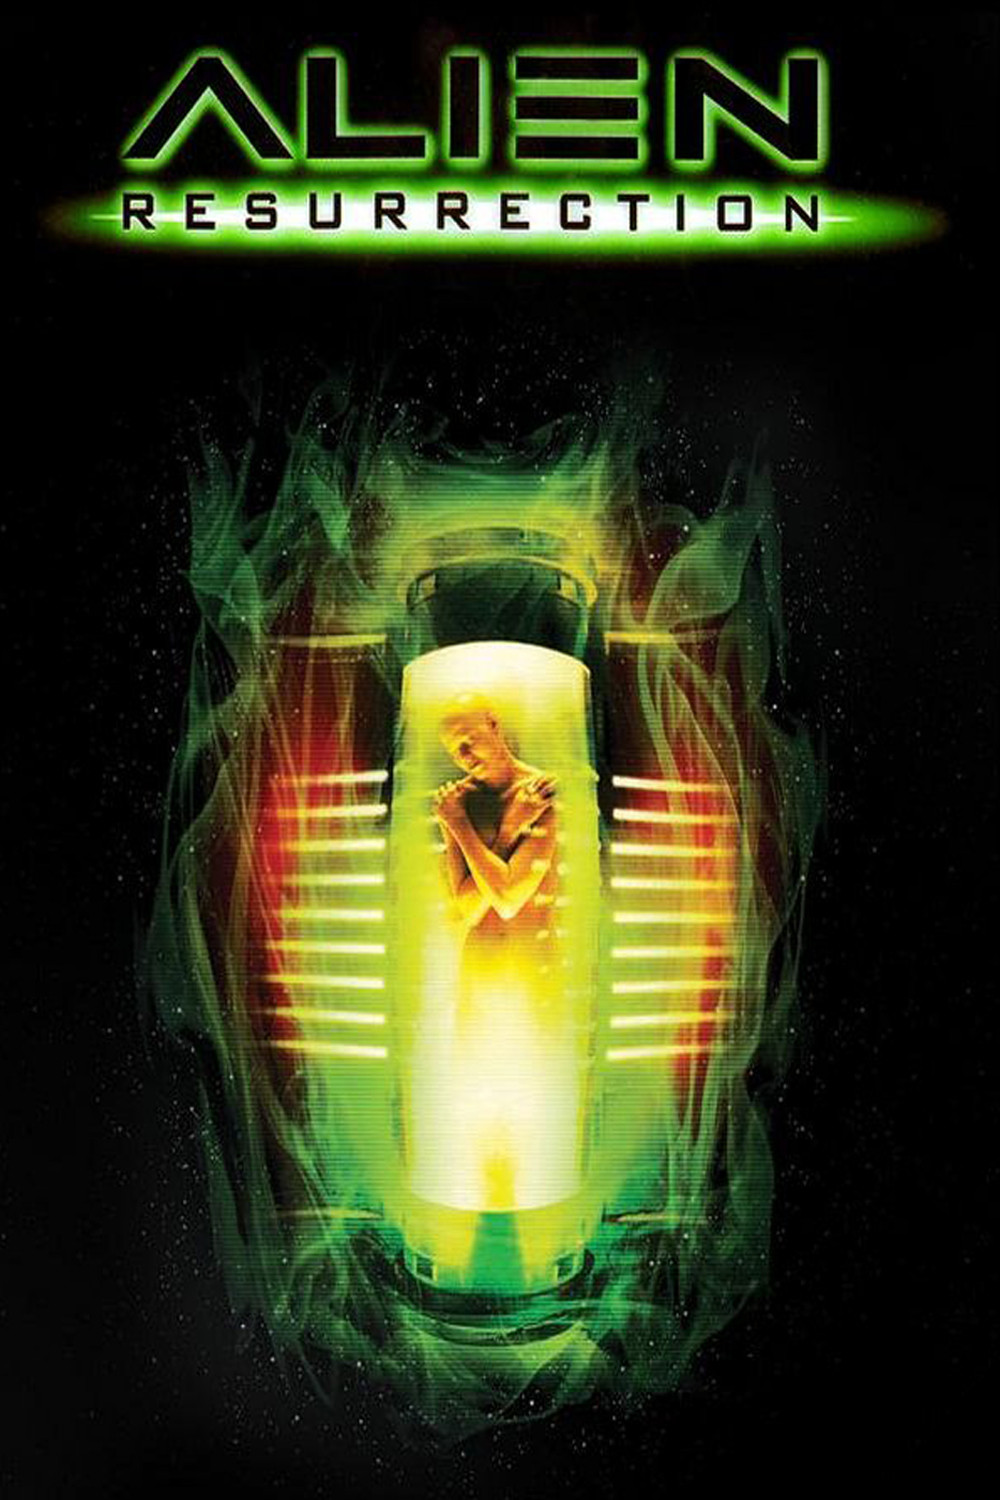 alien_resurrection_poster_1997_03.jpg